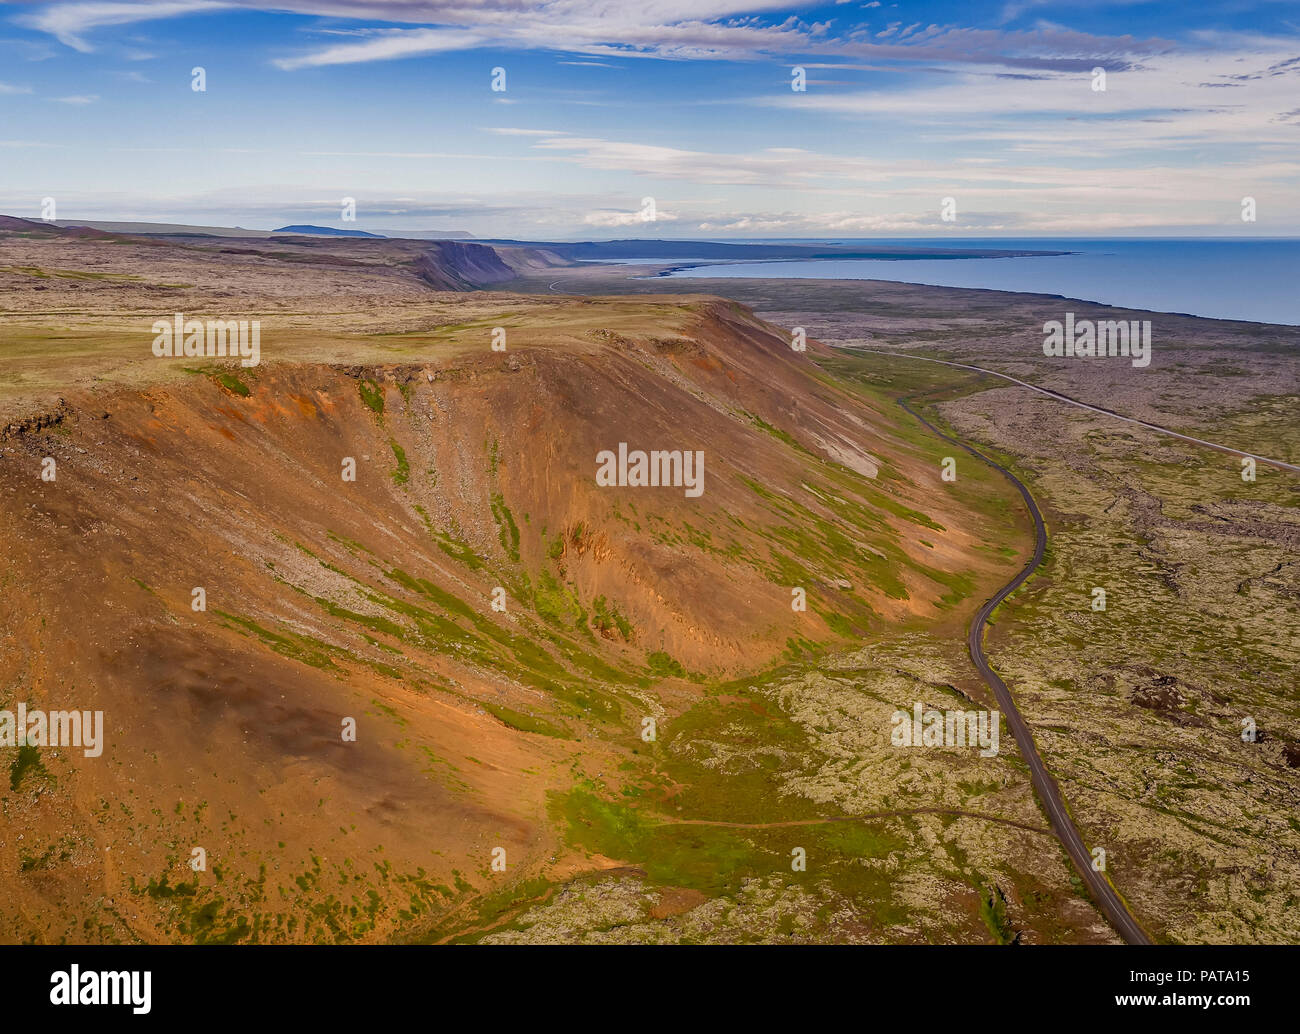 Aerial - Eldborg Crater, Reykjanes, Peninsula, Iceland. This image is shot using a drone. - Stock Image